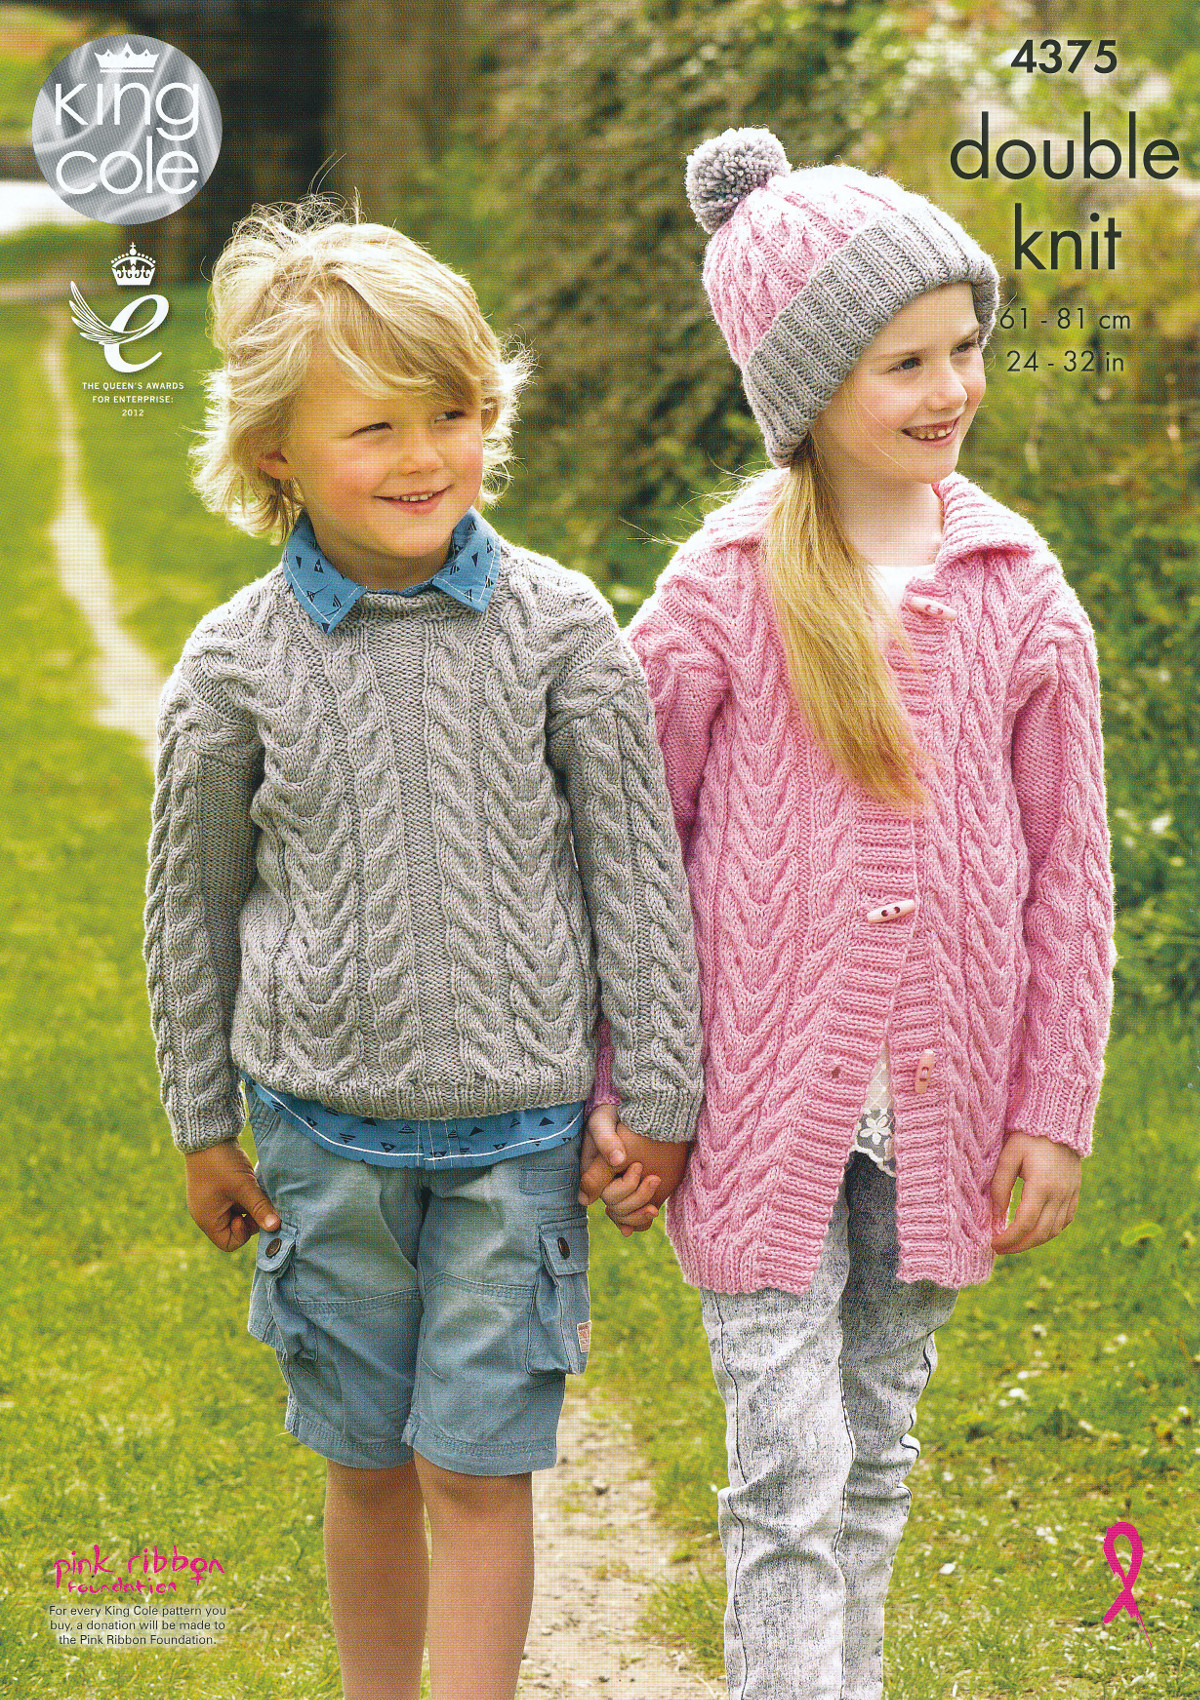 Knit Sweaters Patterns Details About Girls Boys Cable Knit Sweater Cardigan Double Knitting Dk Pattern King Cole 4375